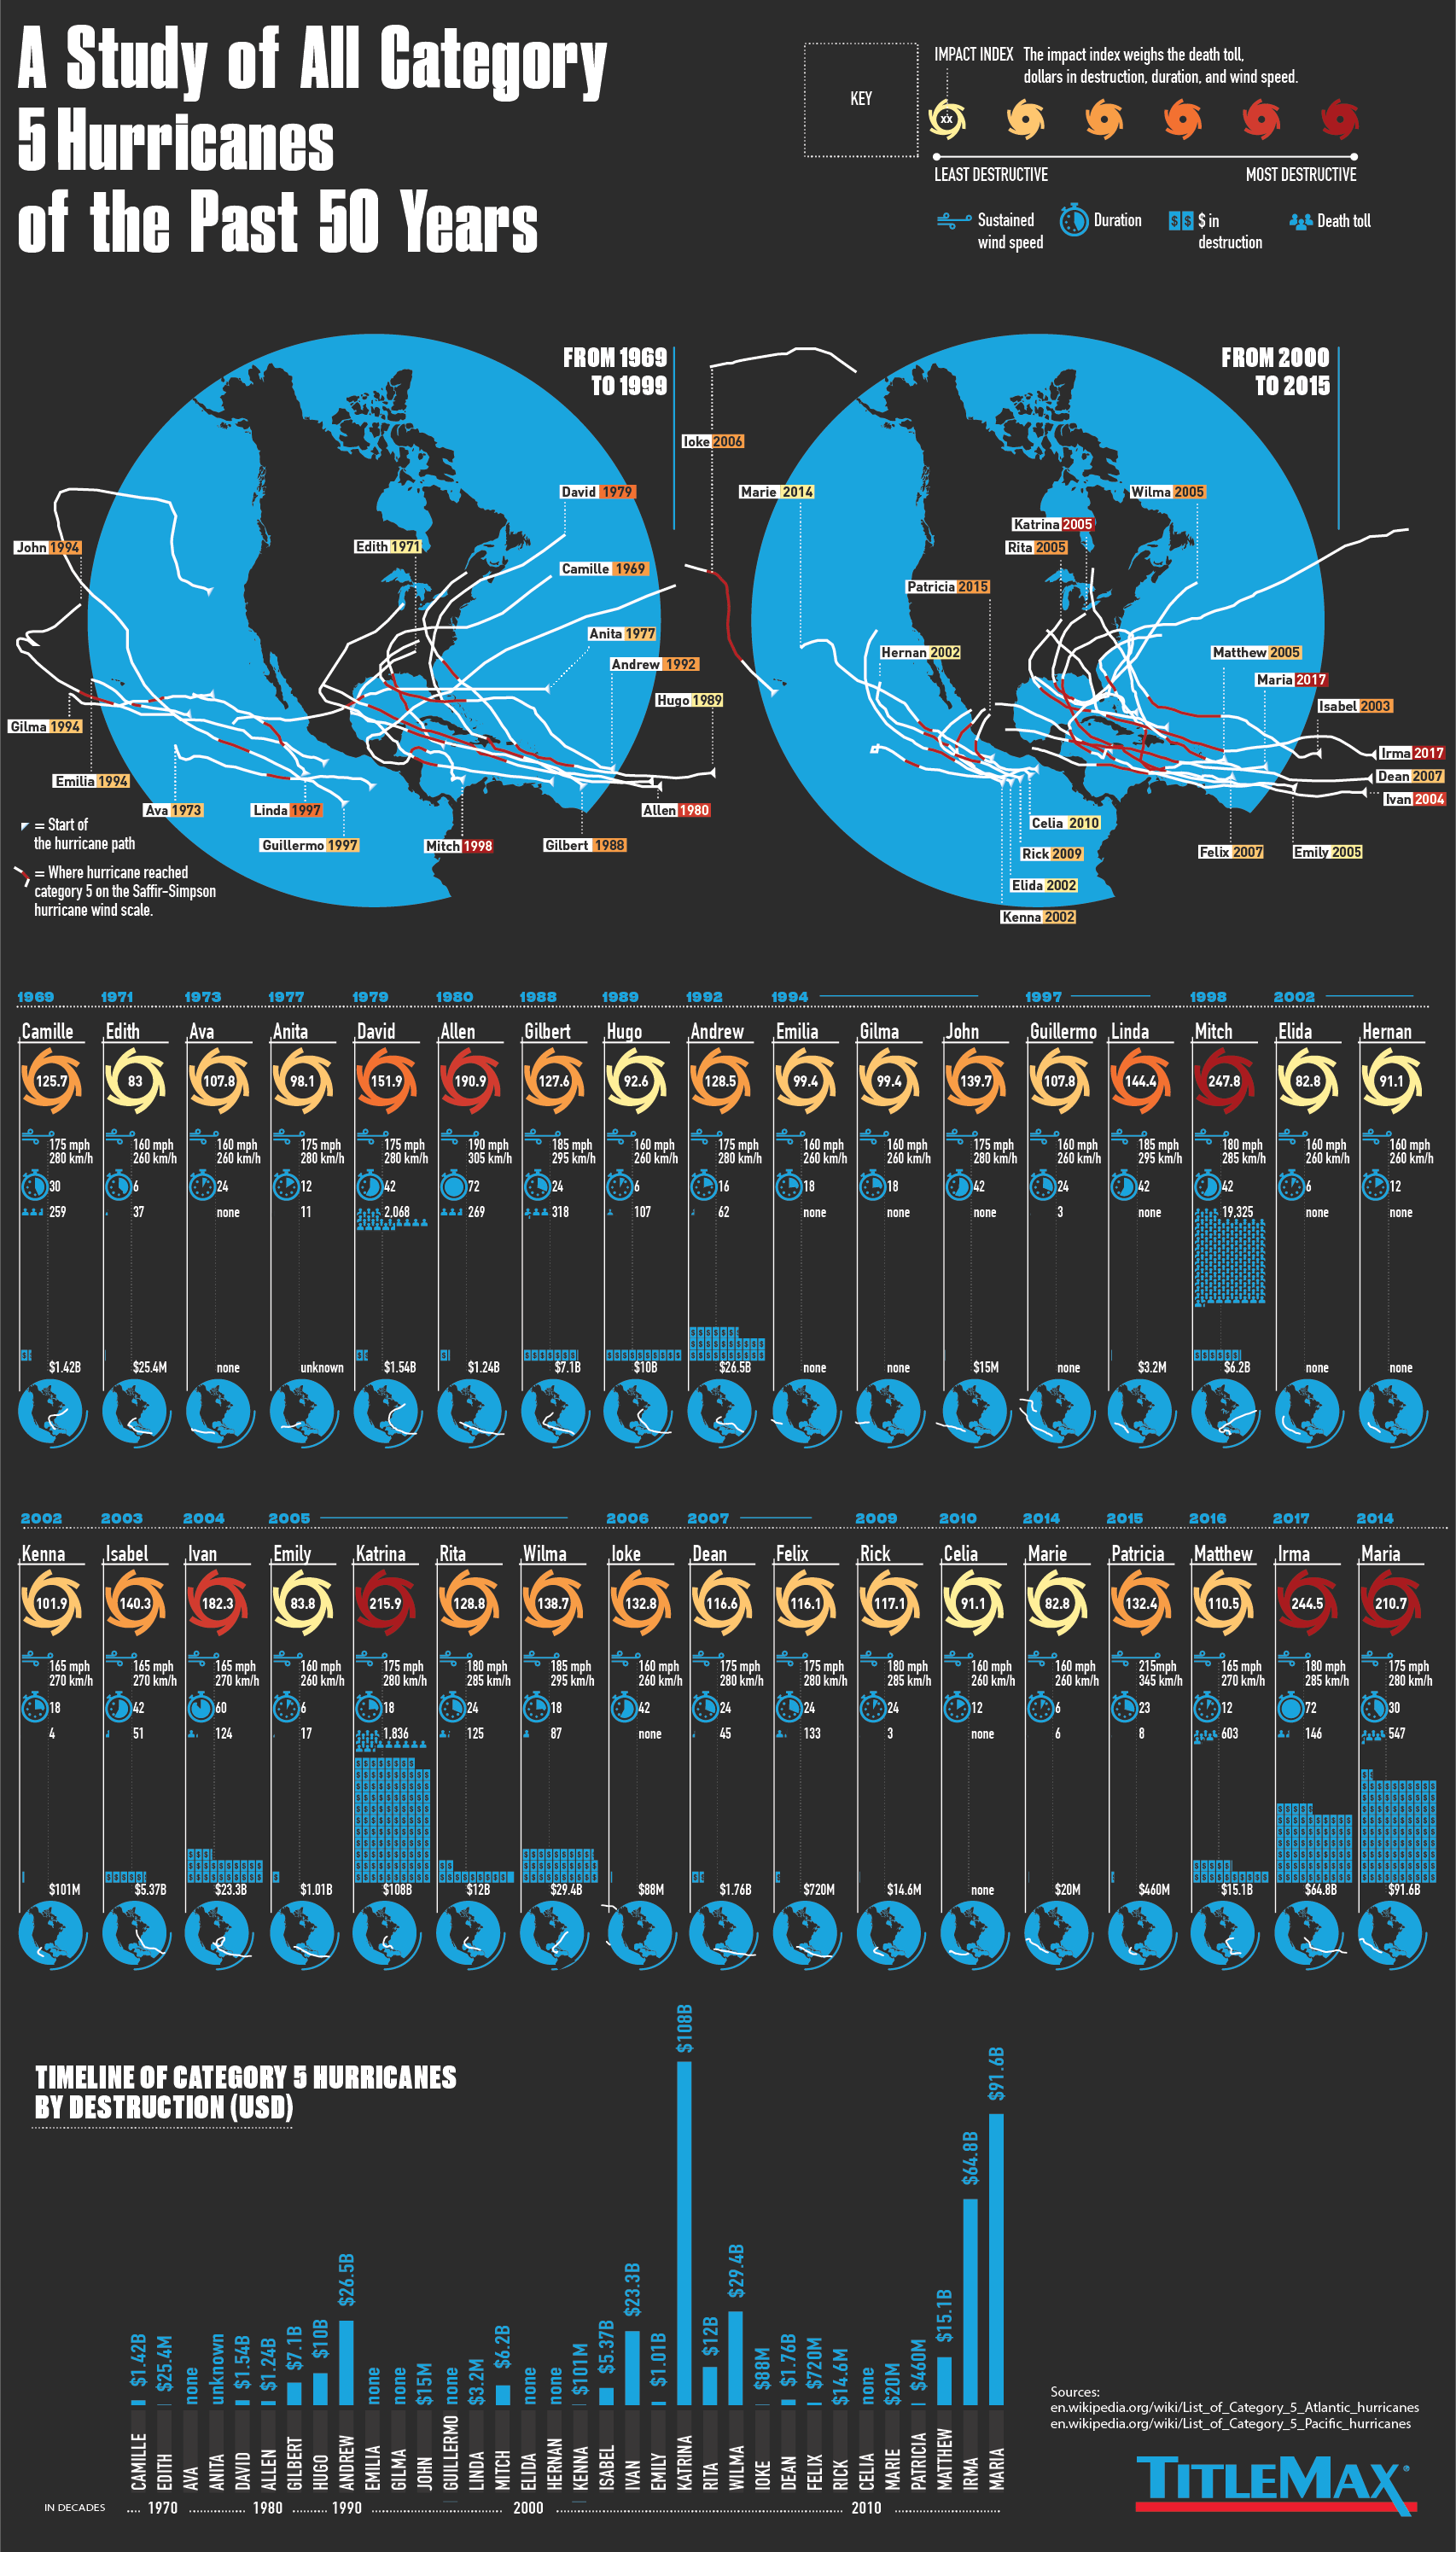 Category 5 Hurricanes of the Past 50 Years